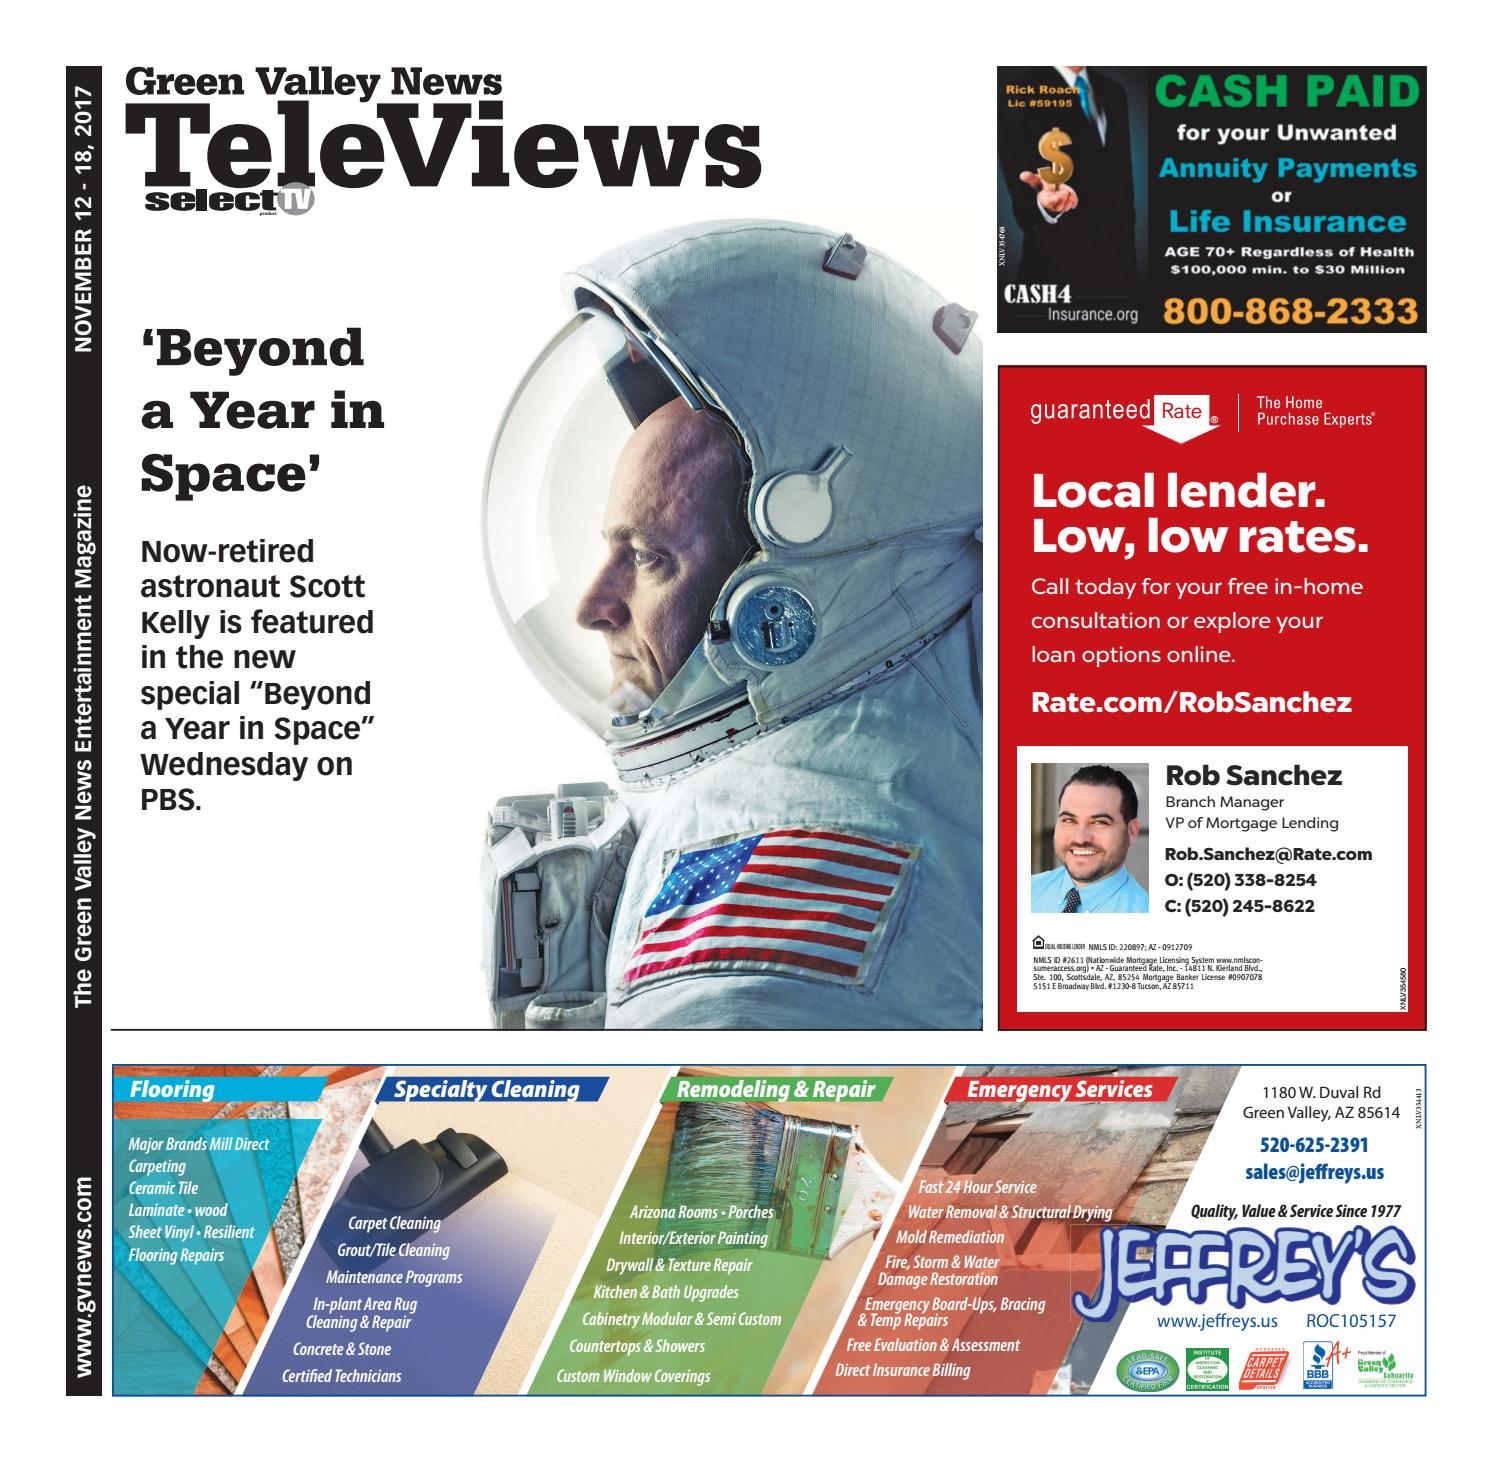 Televiews: Sunday, November 12, 2017 by Wick Communications - issuu